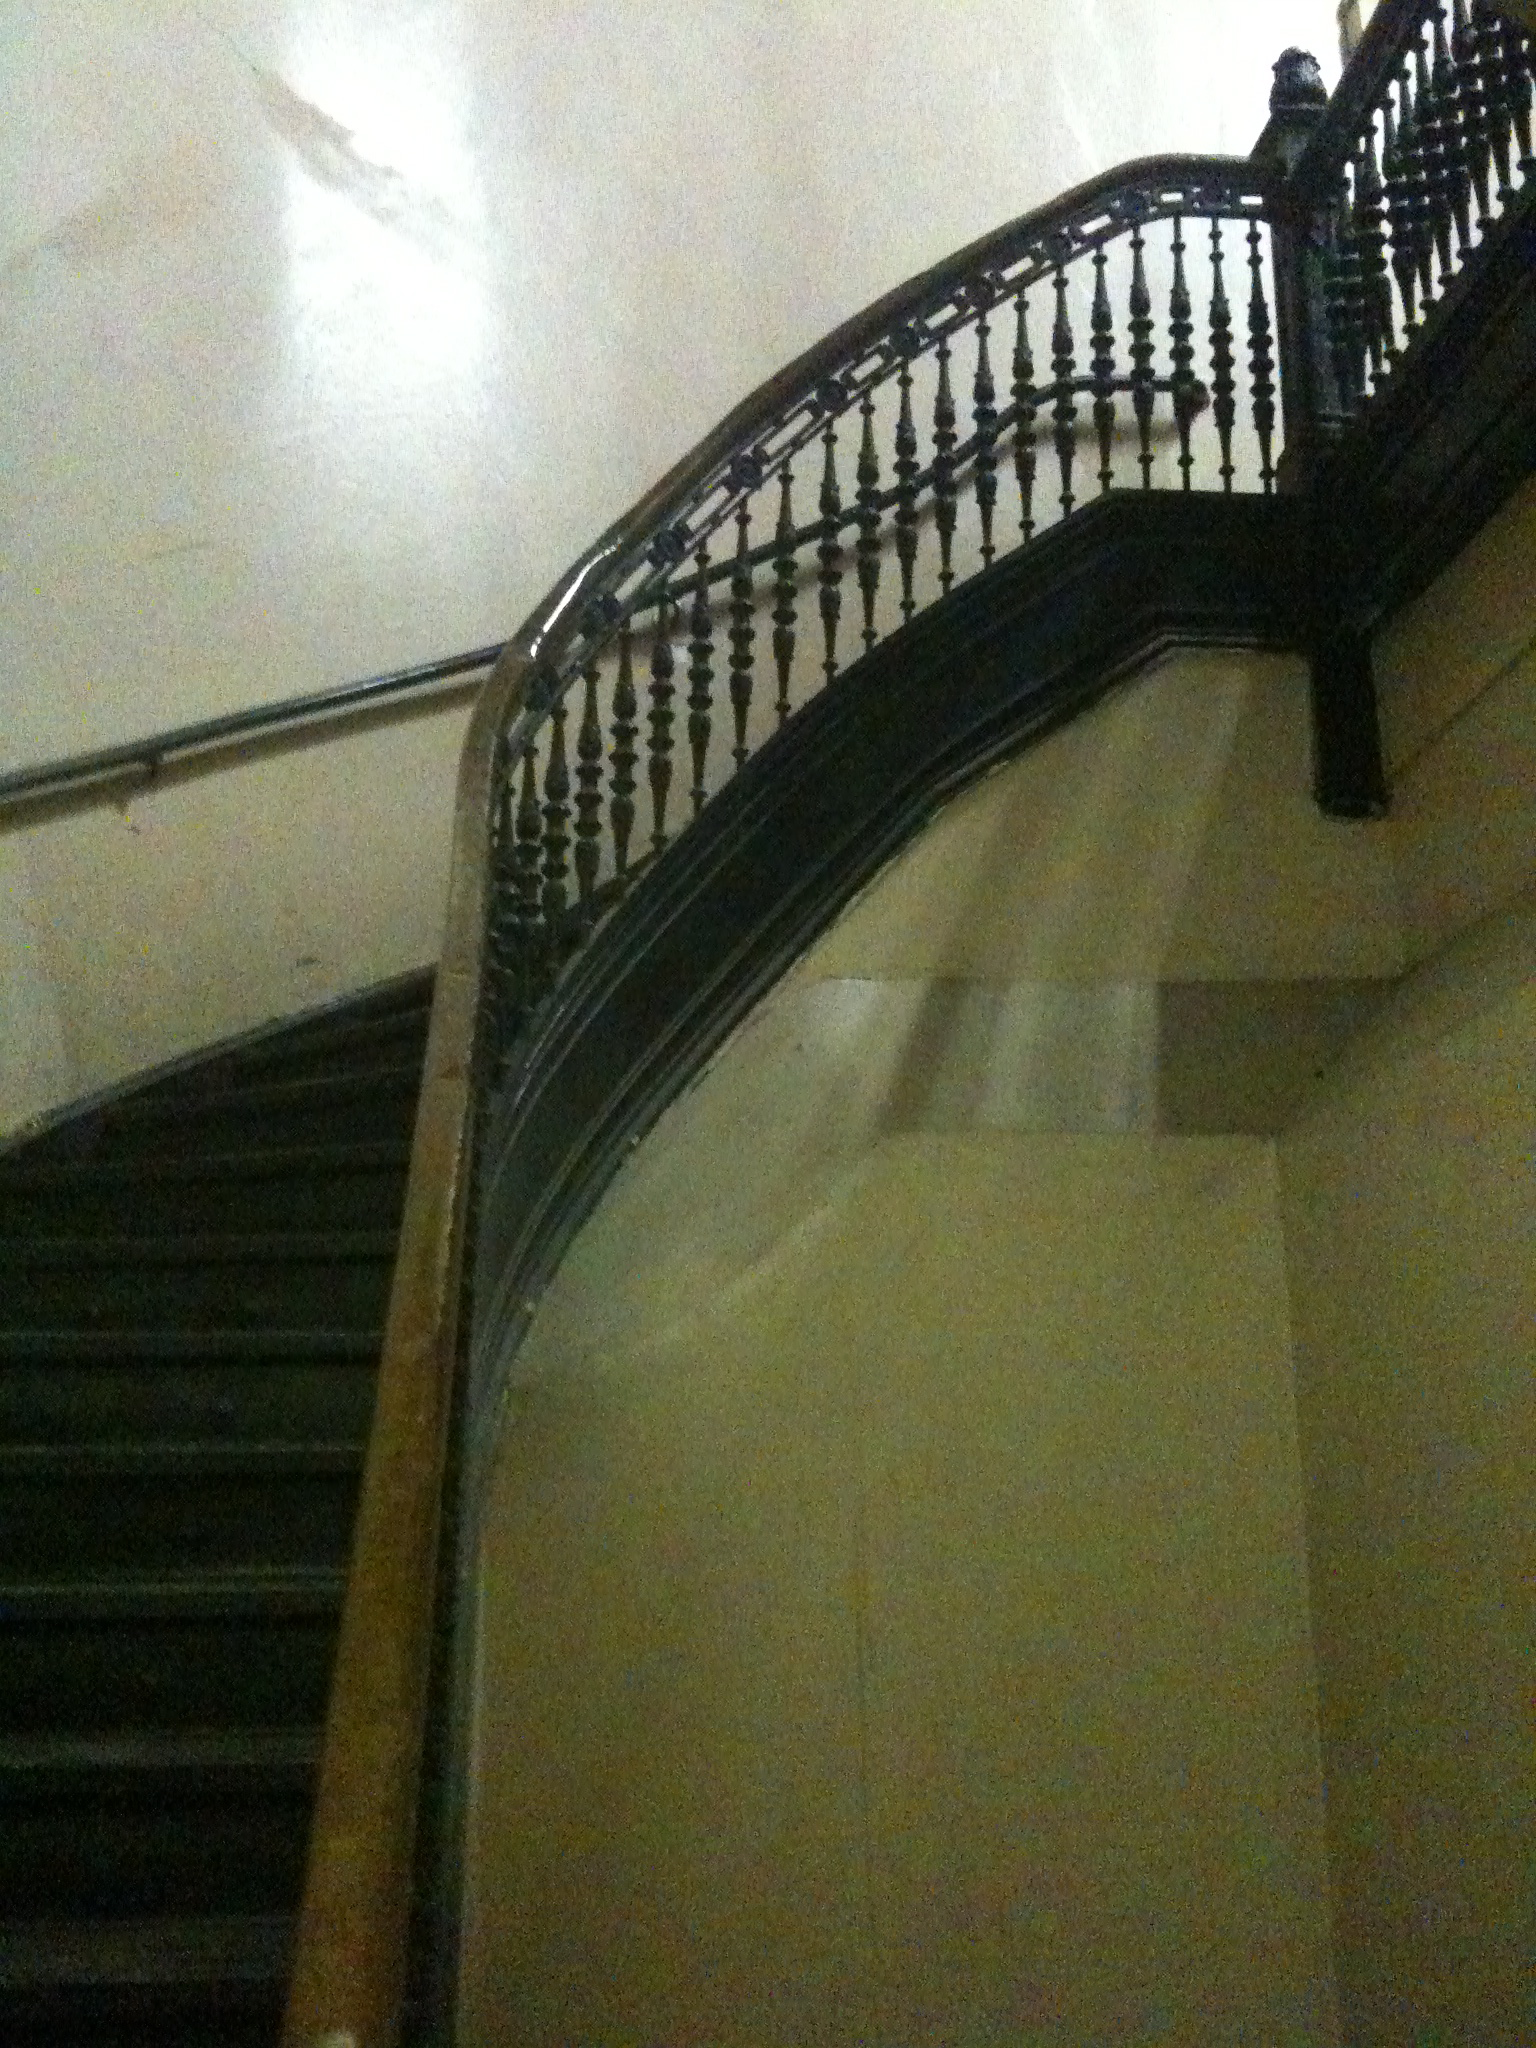 ... Apartment Spiral Staircase Los Angeles Filming Location Herald